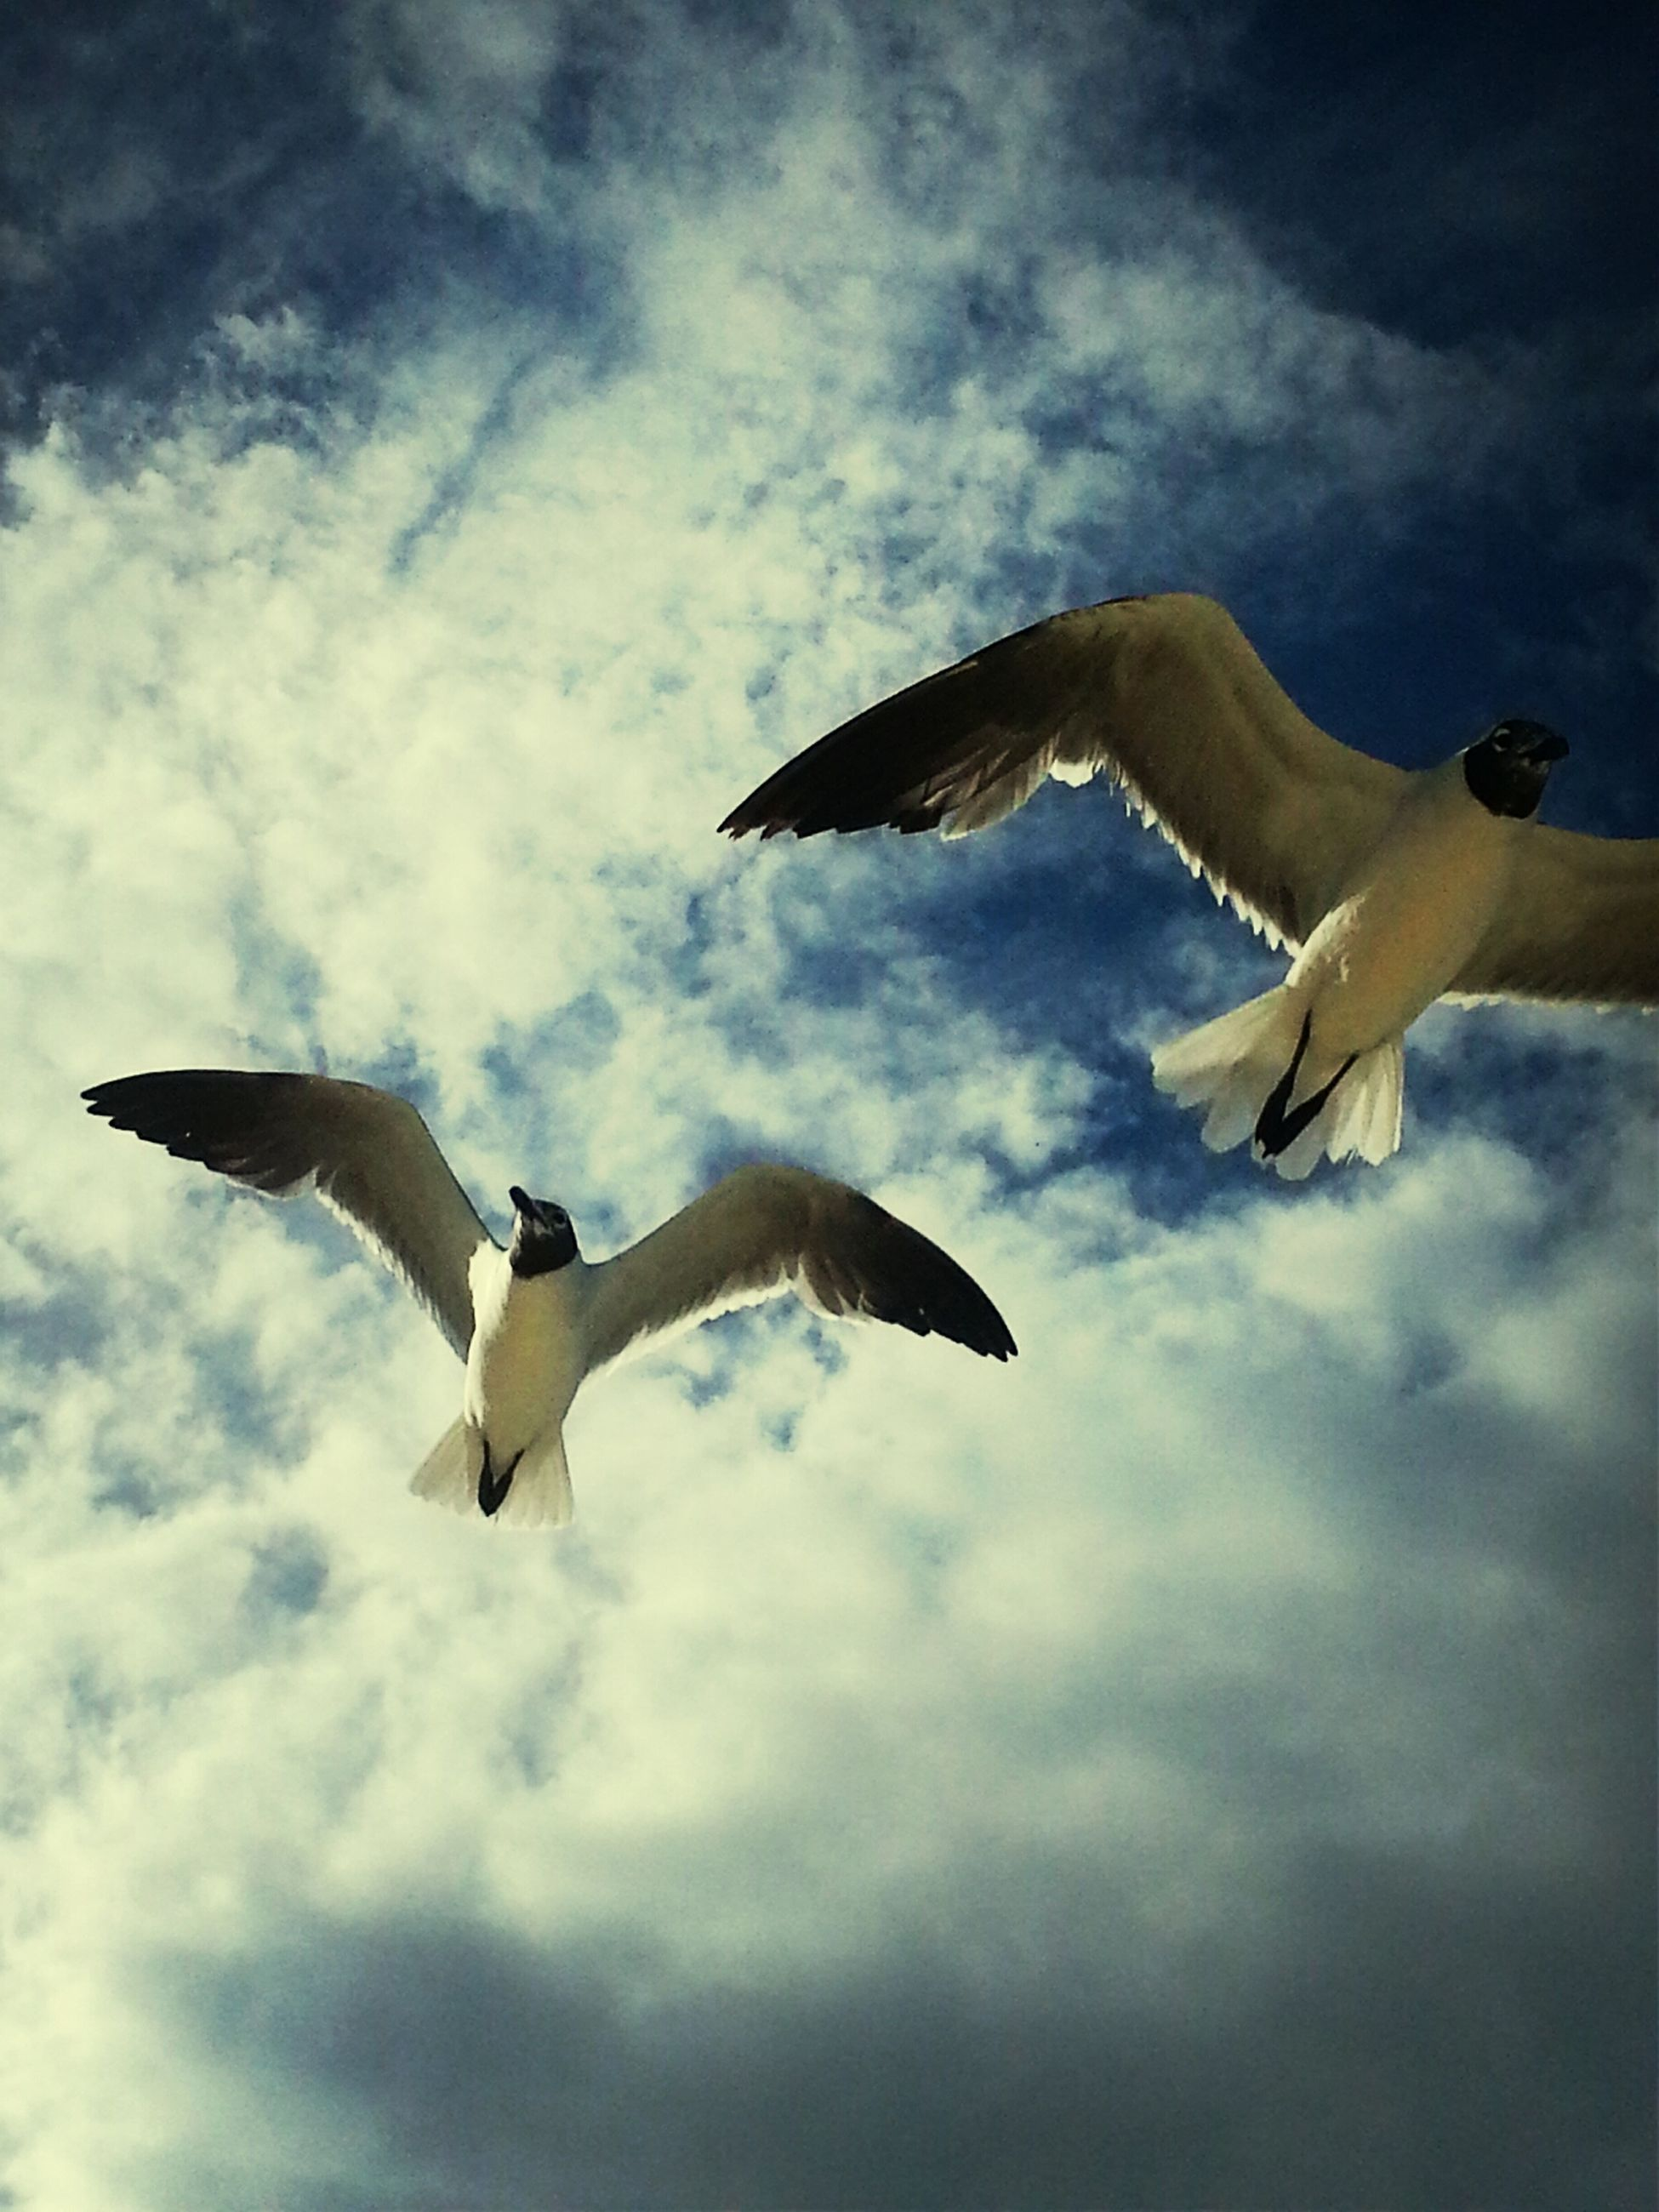 low angle view, sky, flying, cloud - sky, mid-air, cloudy, cloud, spread wings, bird, animal themes, freedom, seagull, blue, day, nature, outdoors, motion, wildlife, animals in the wild, full length